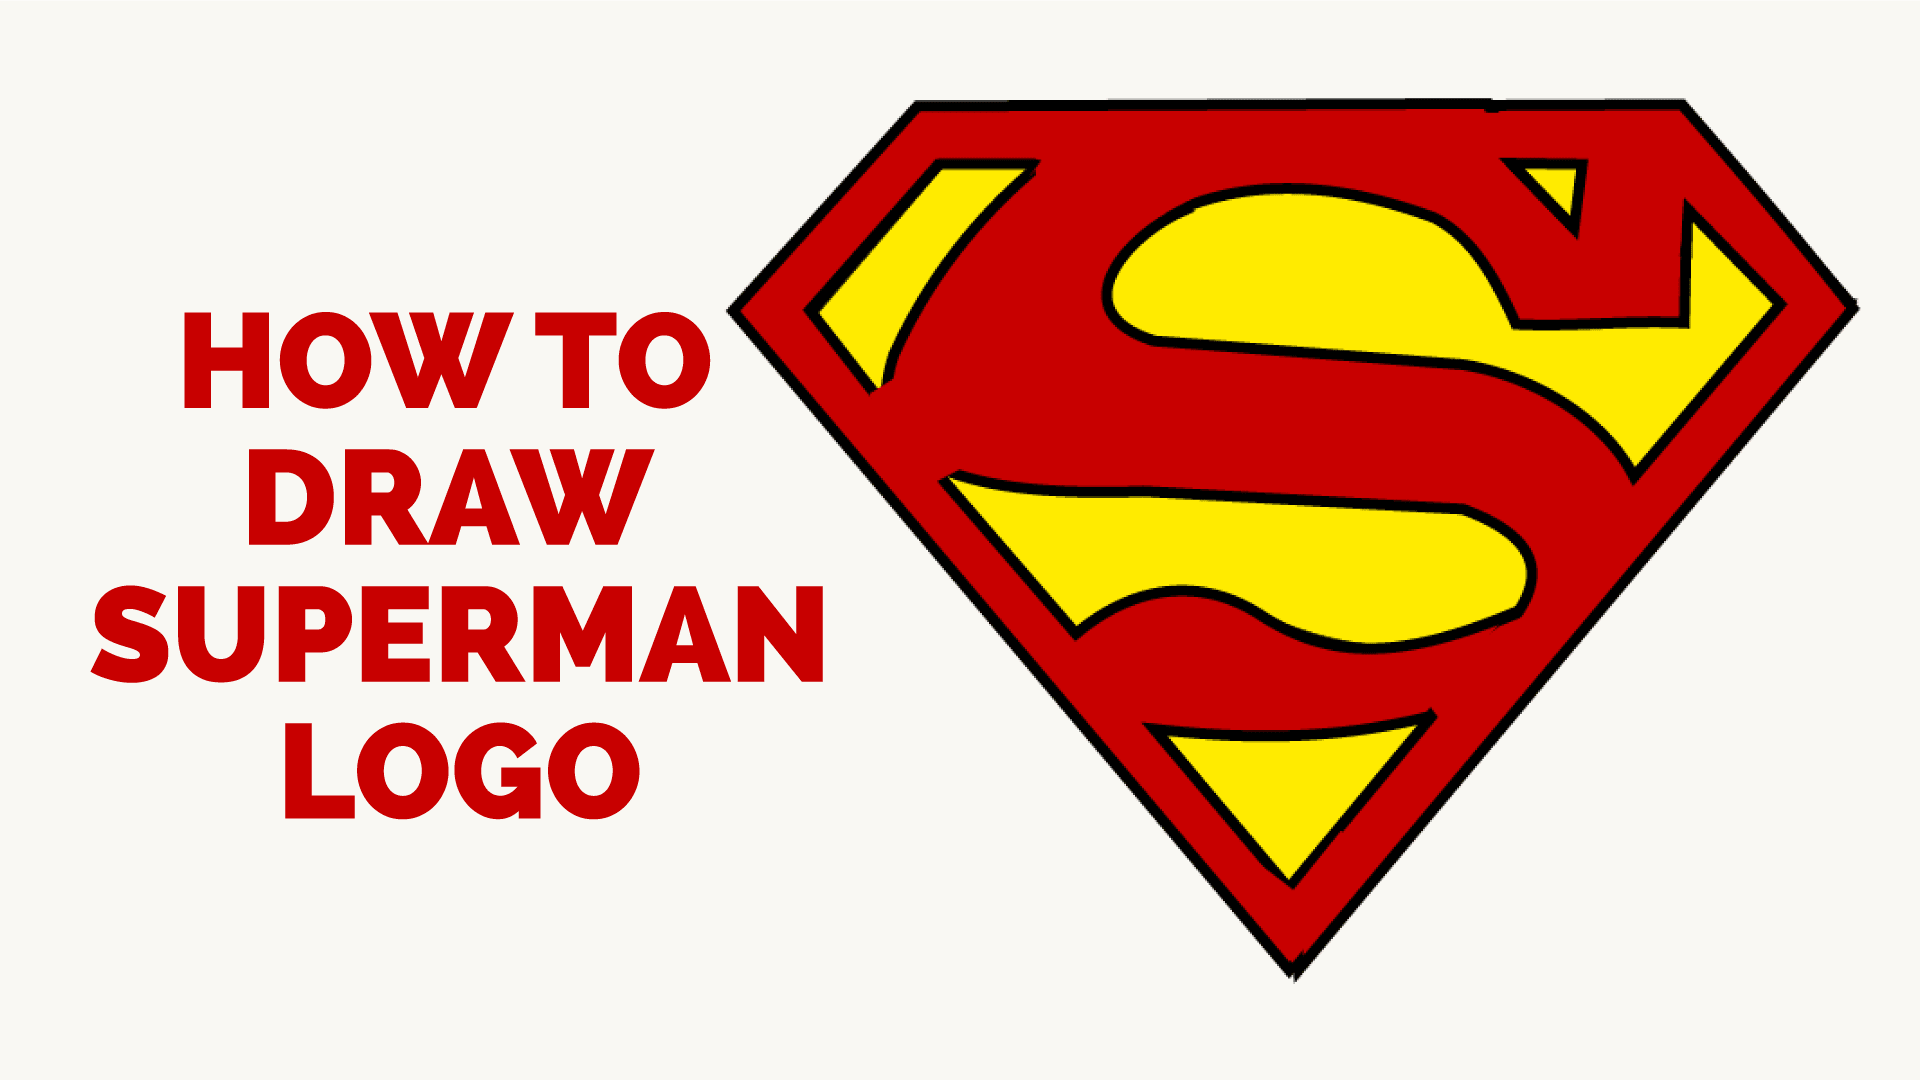 how to draw superman logo easy step by step drawing guides